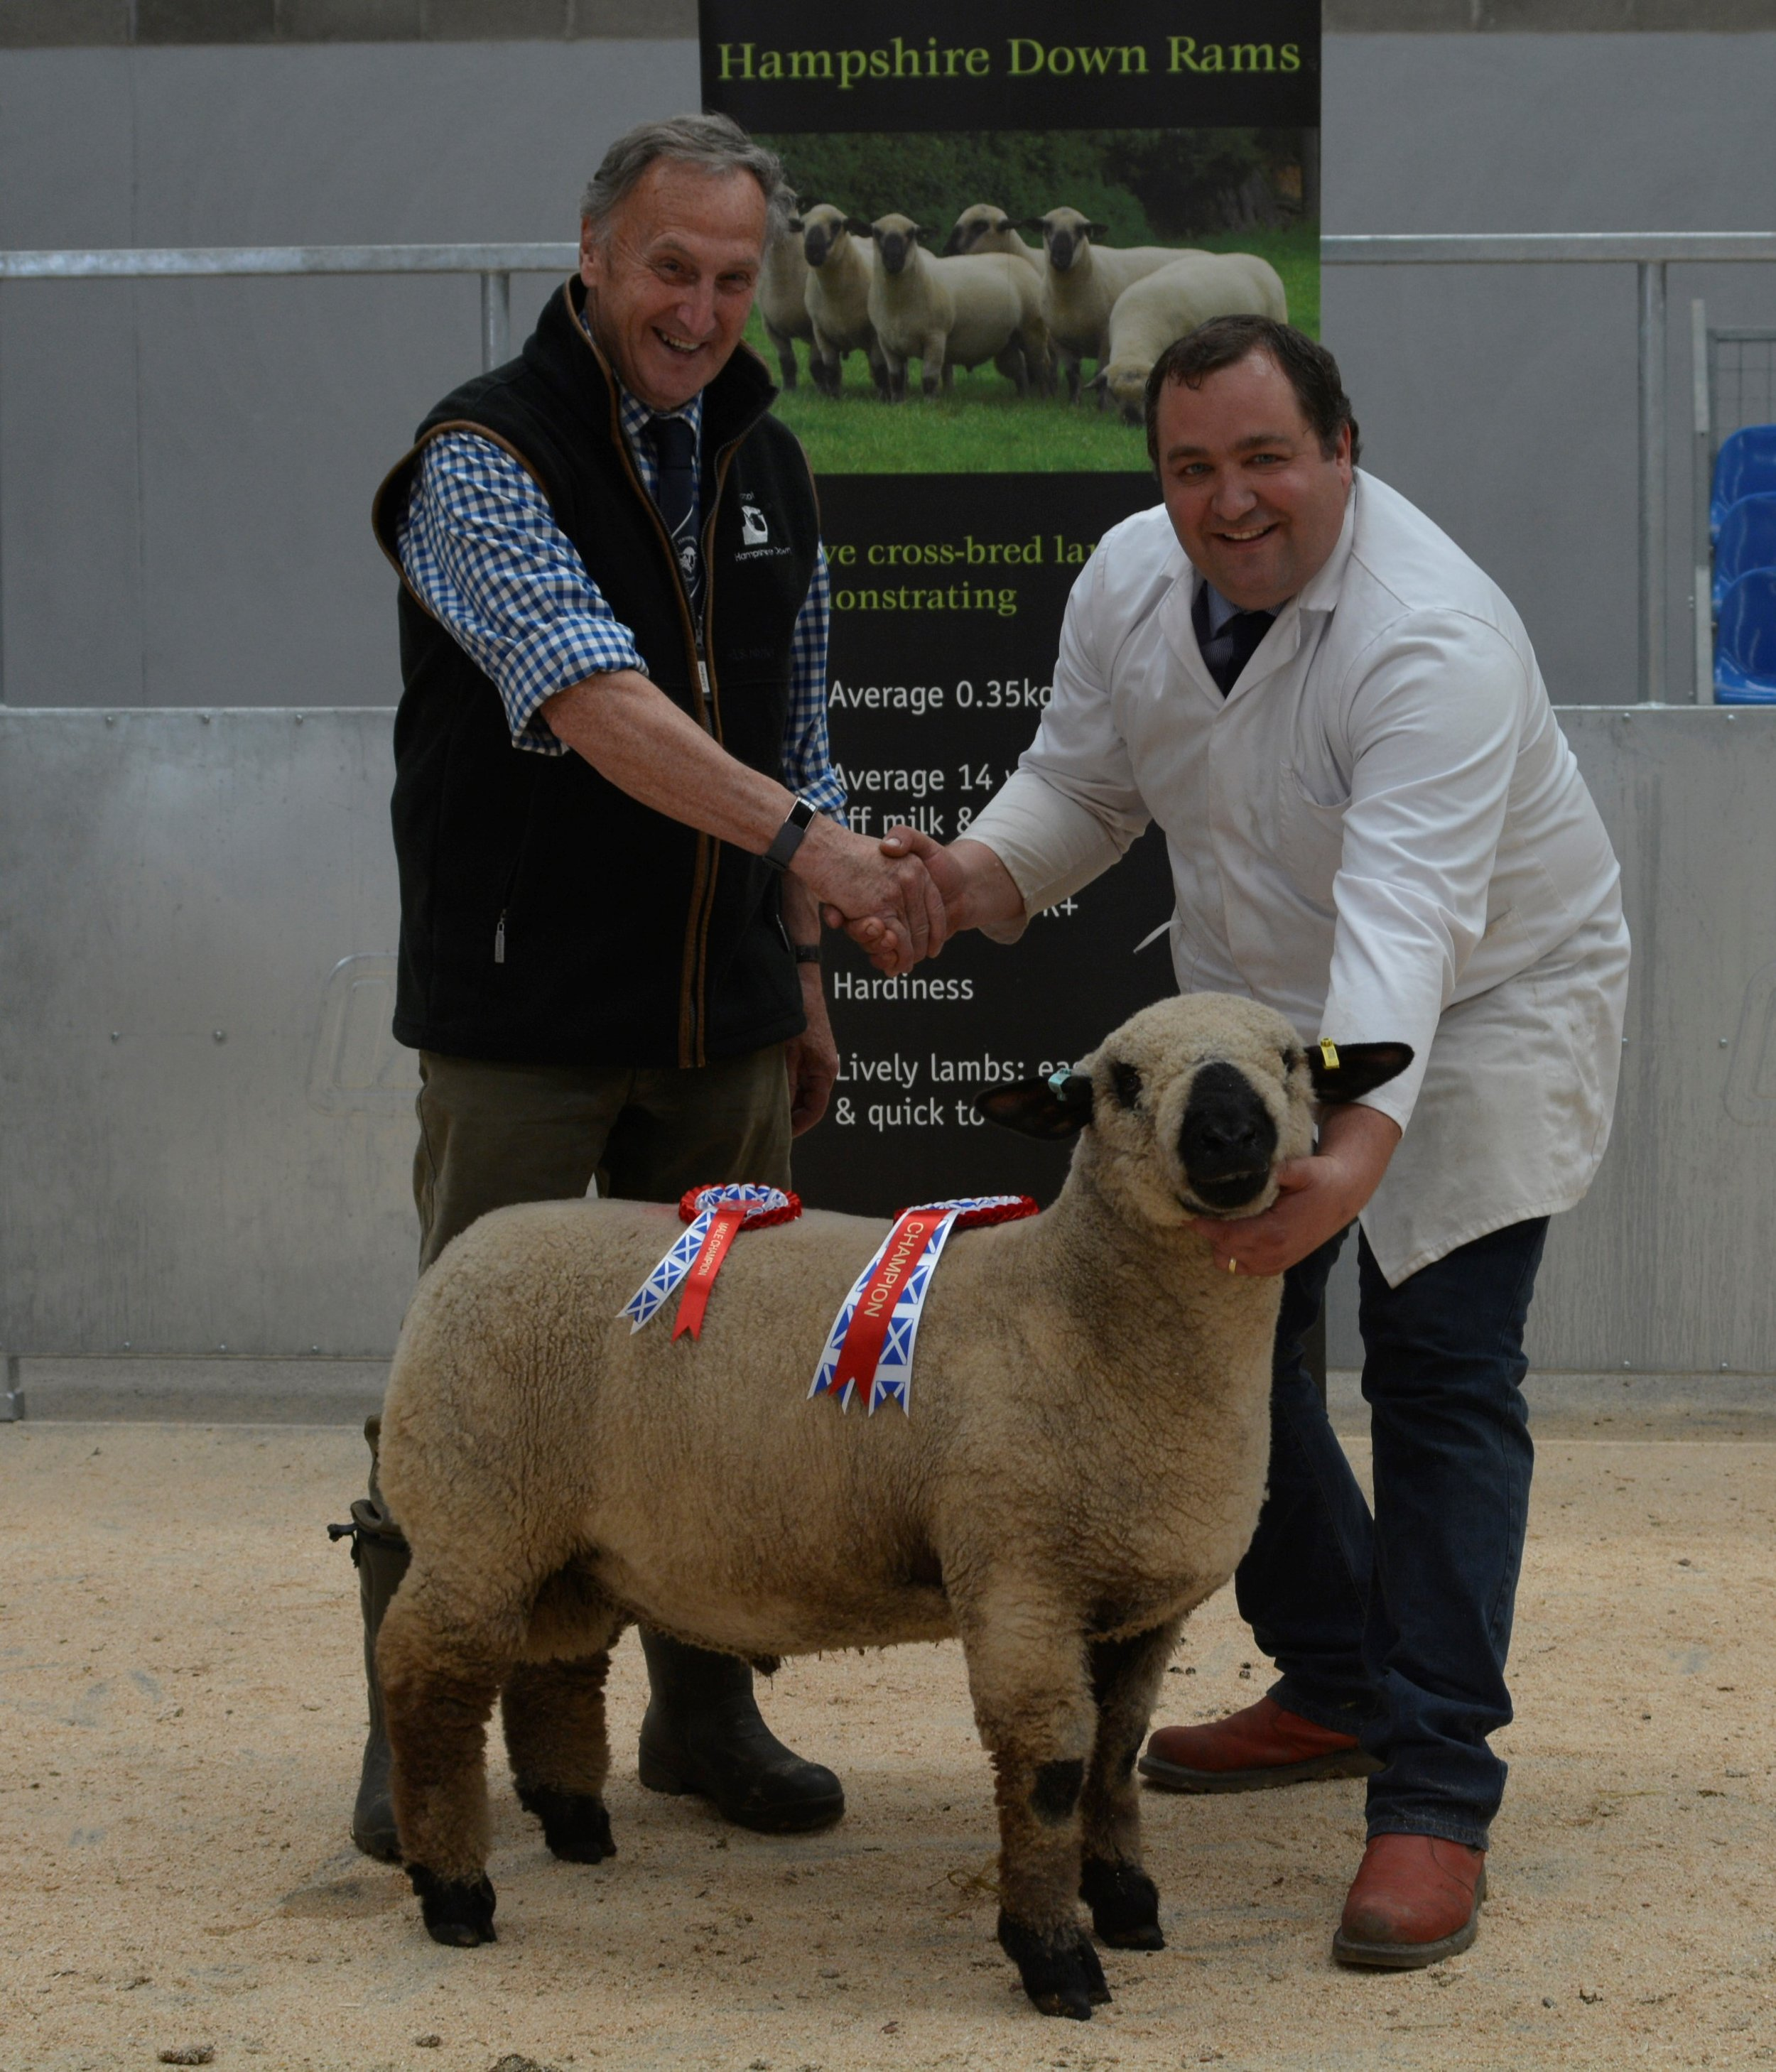 HDSBA President Roy McFarlane, sponsor of the ram lamb class presents the prize to the overall champion and top price ram lamb from R A Rundle, Treworthal. Selling for 1100 gns to Stuart & Alison Moore, Balhall Flock